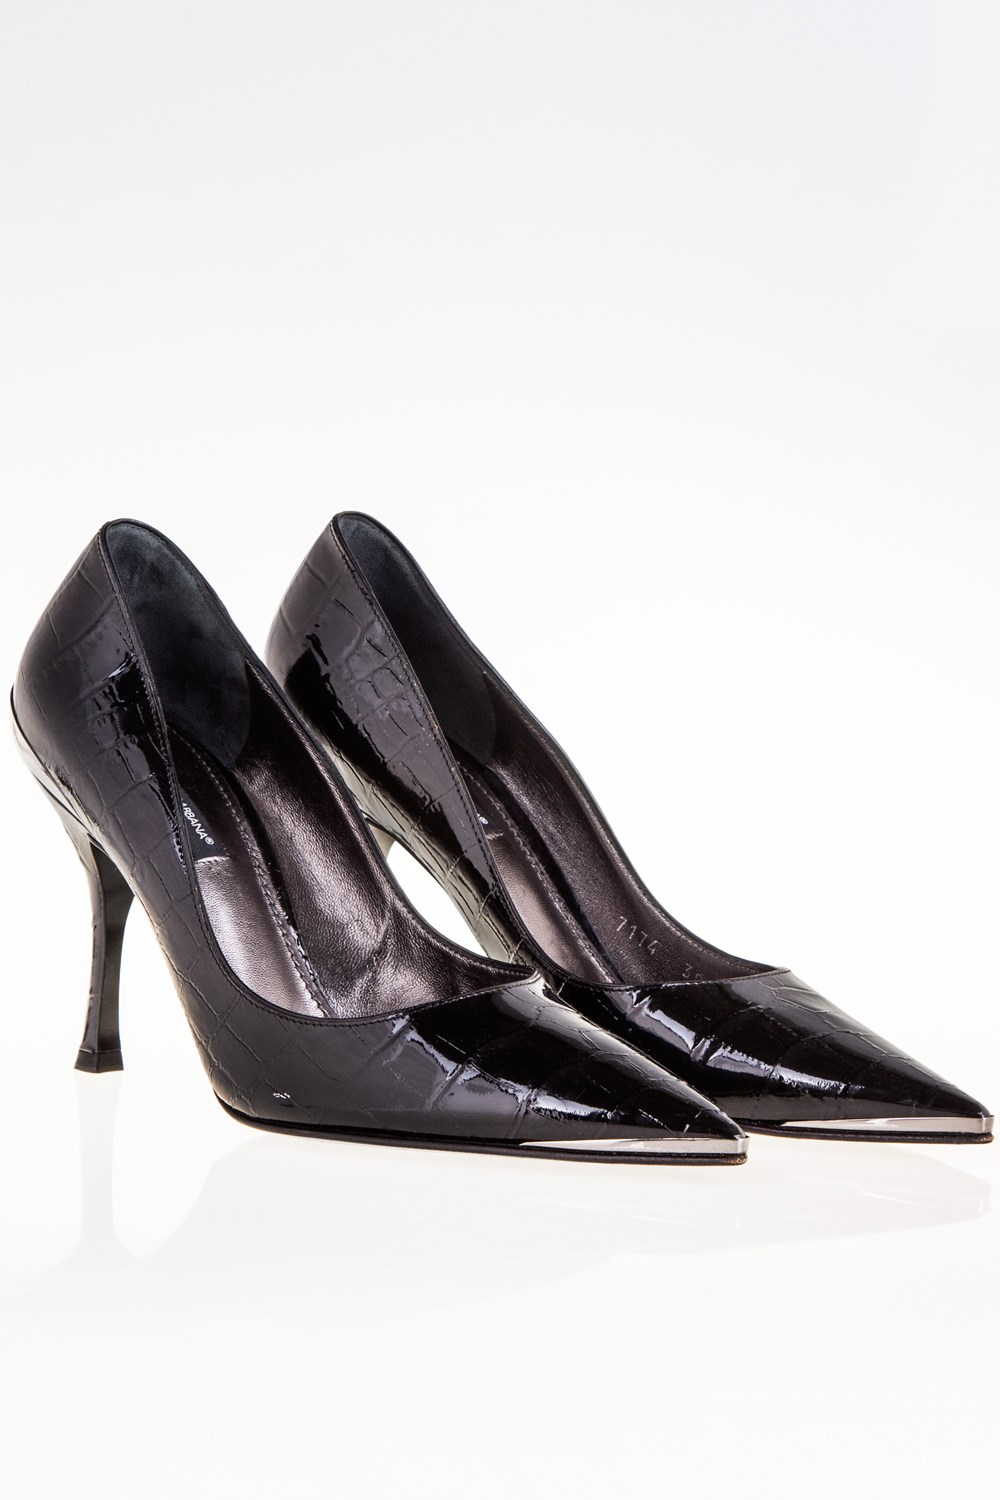 Black Patent Leather Pointed Toe Pumps